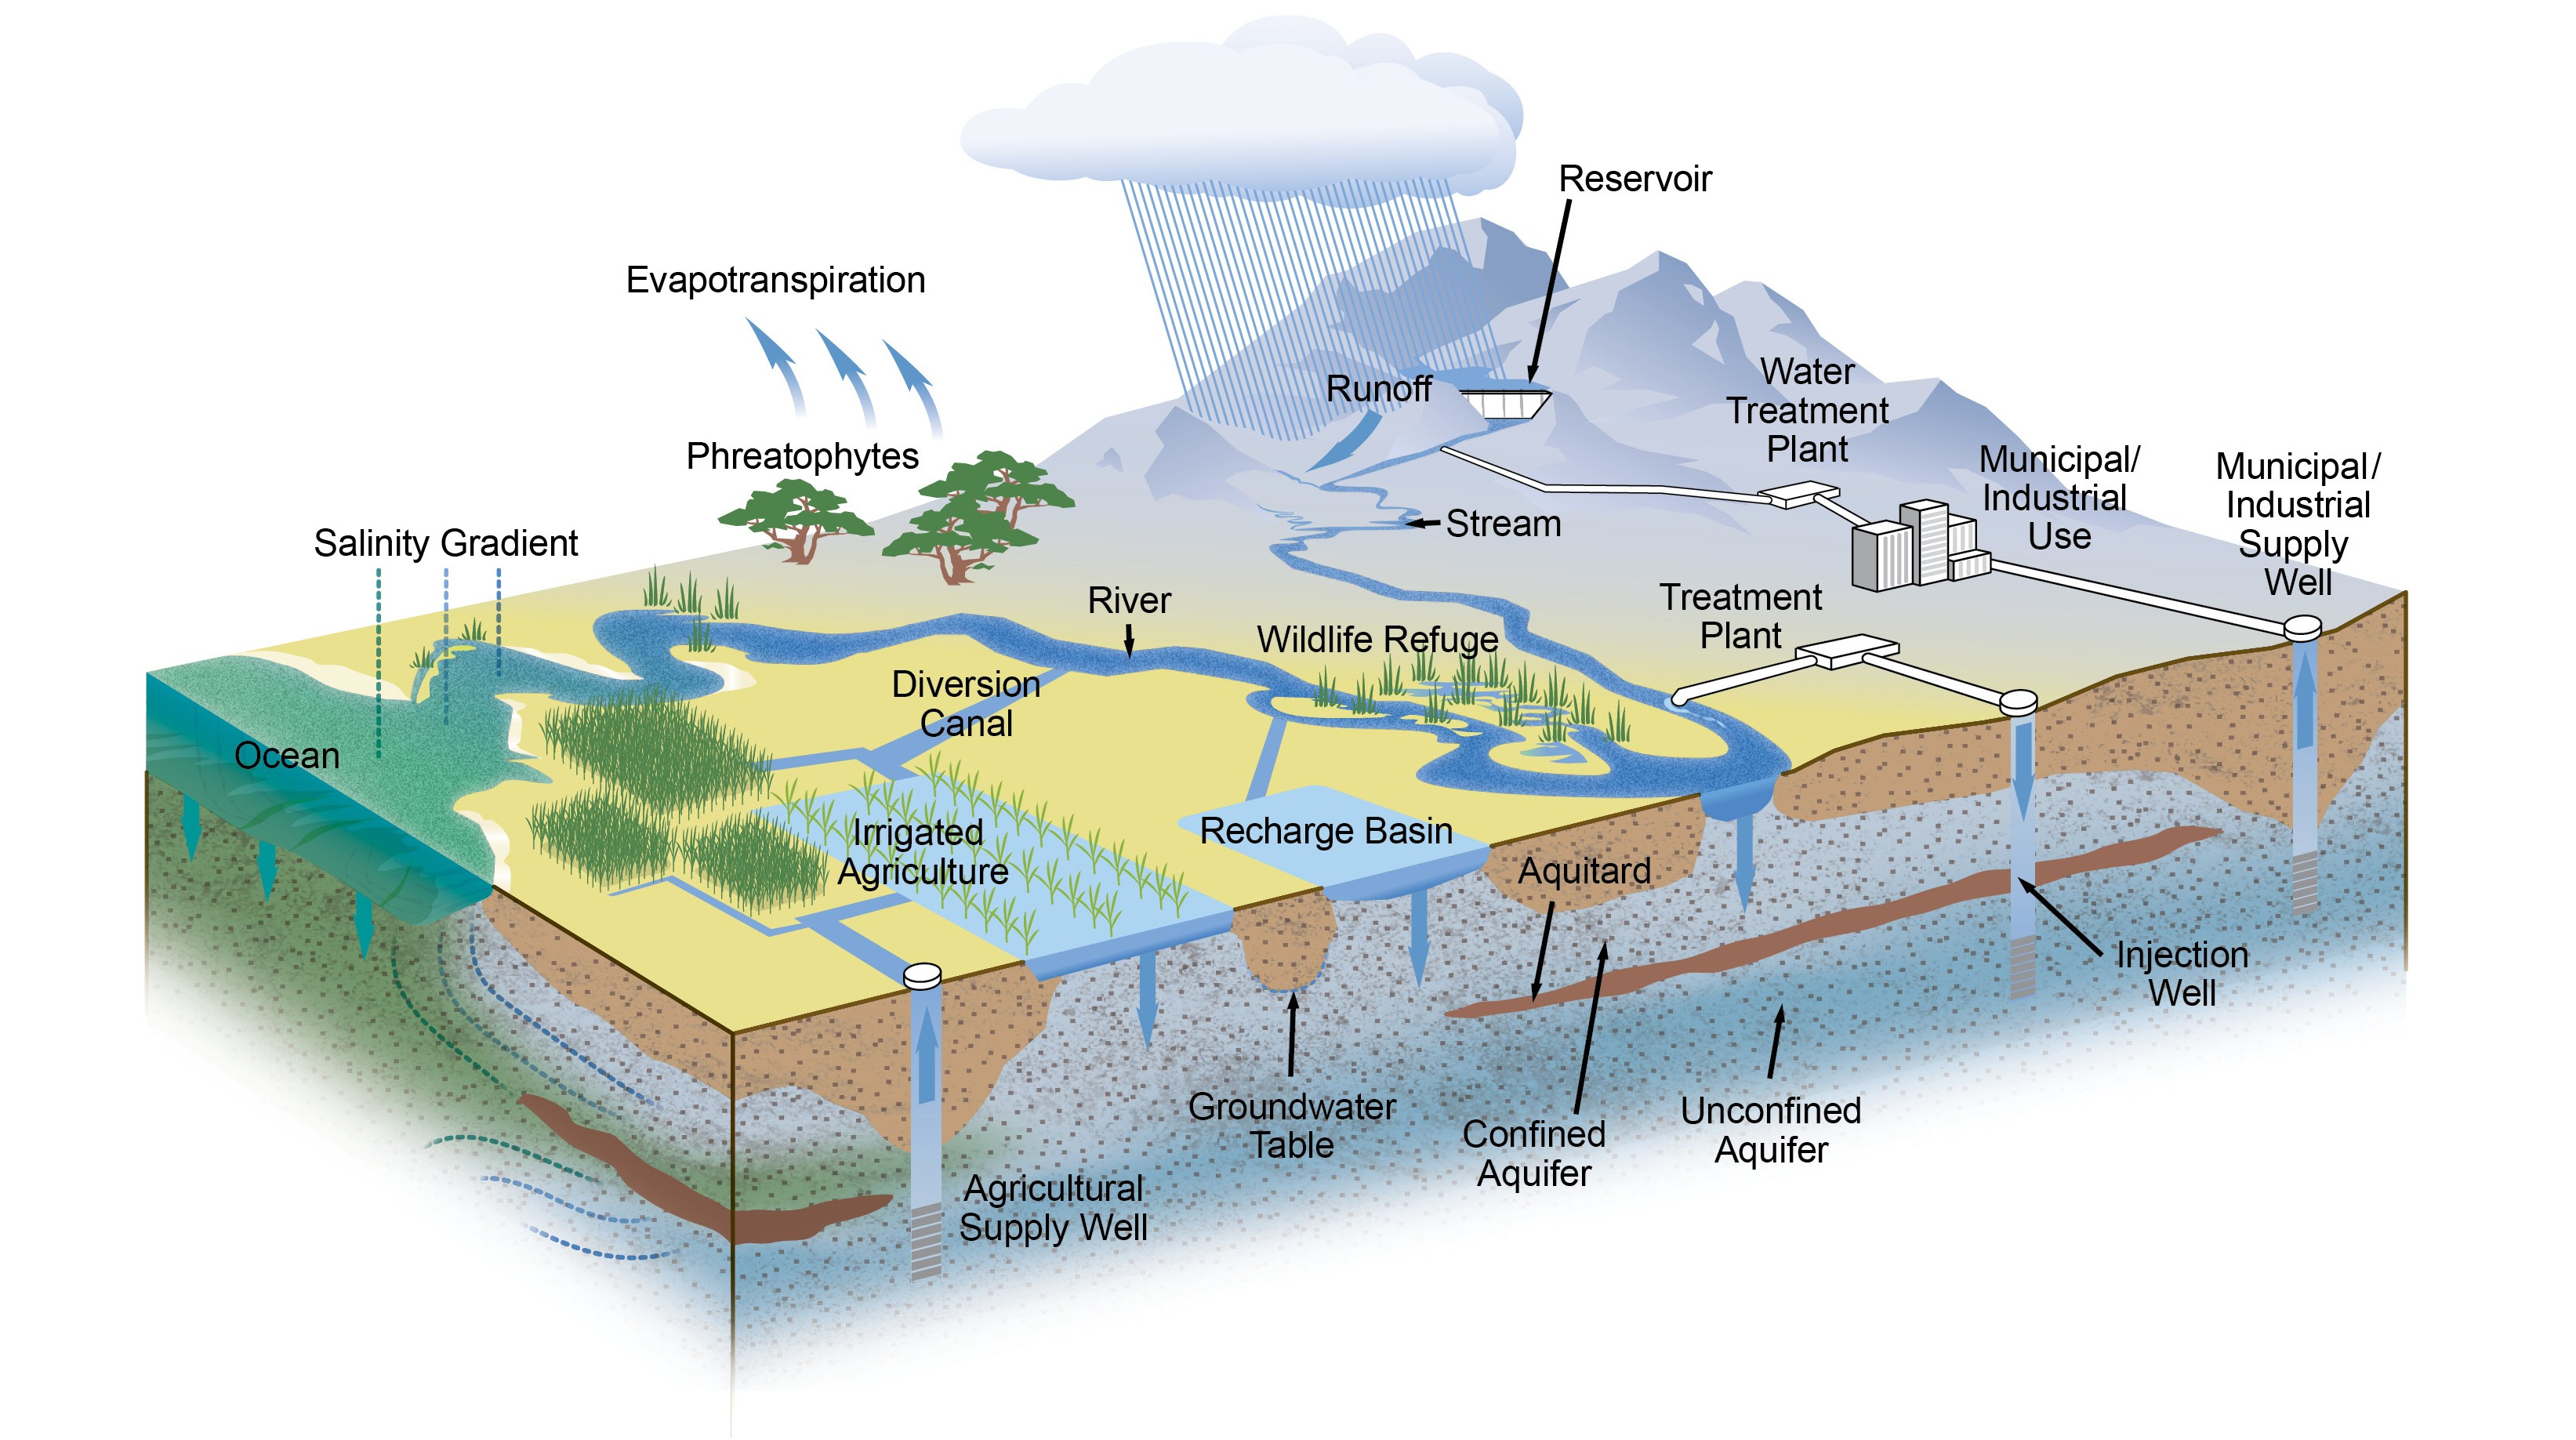 conceptual water modeling system (contact 916-653-7807 for additional information)